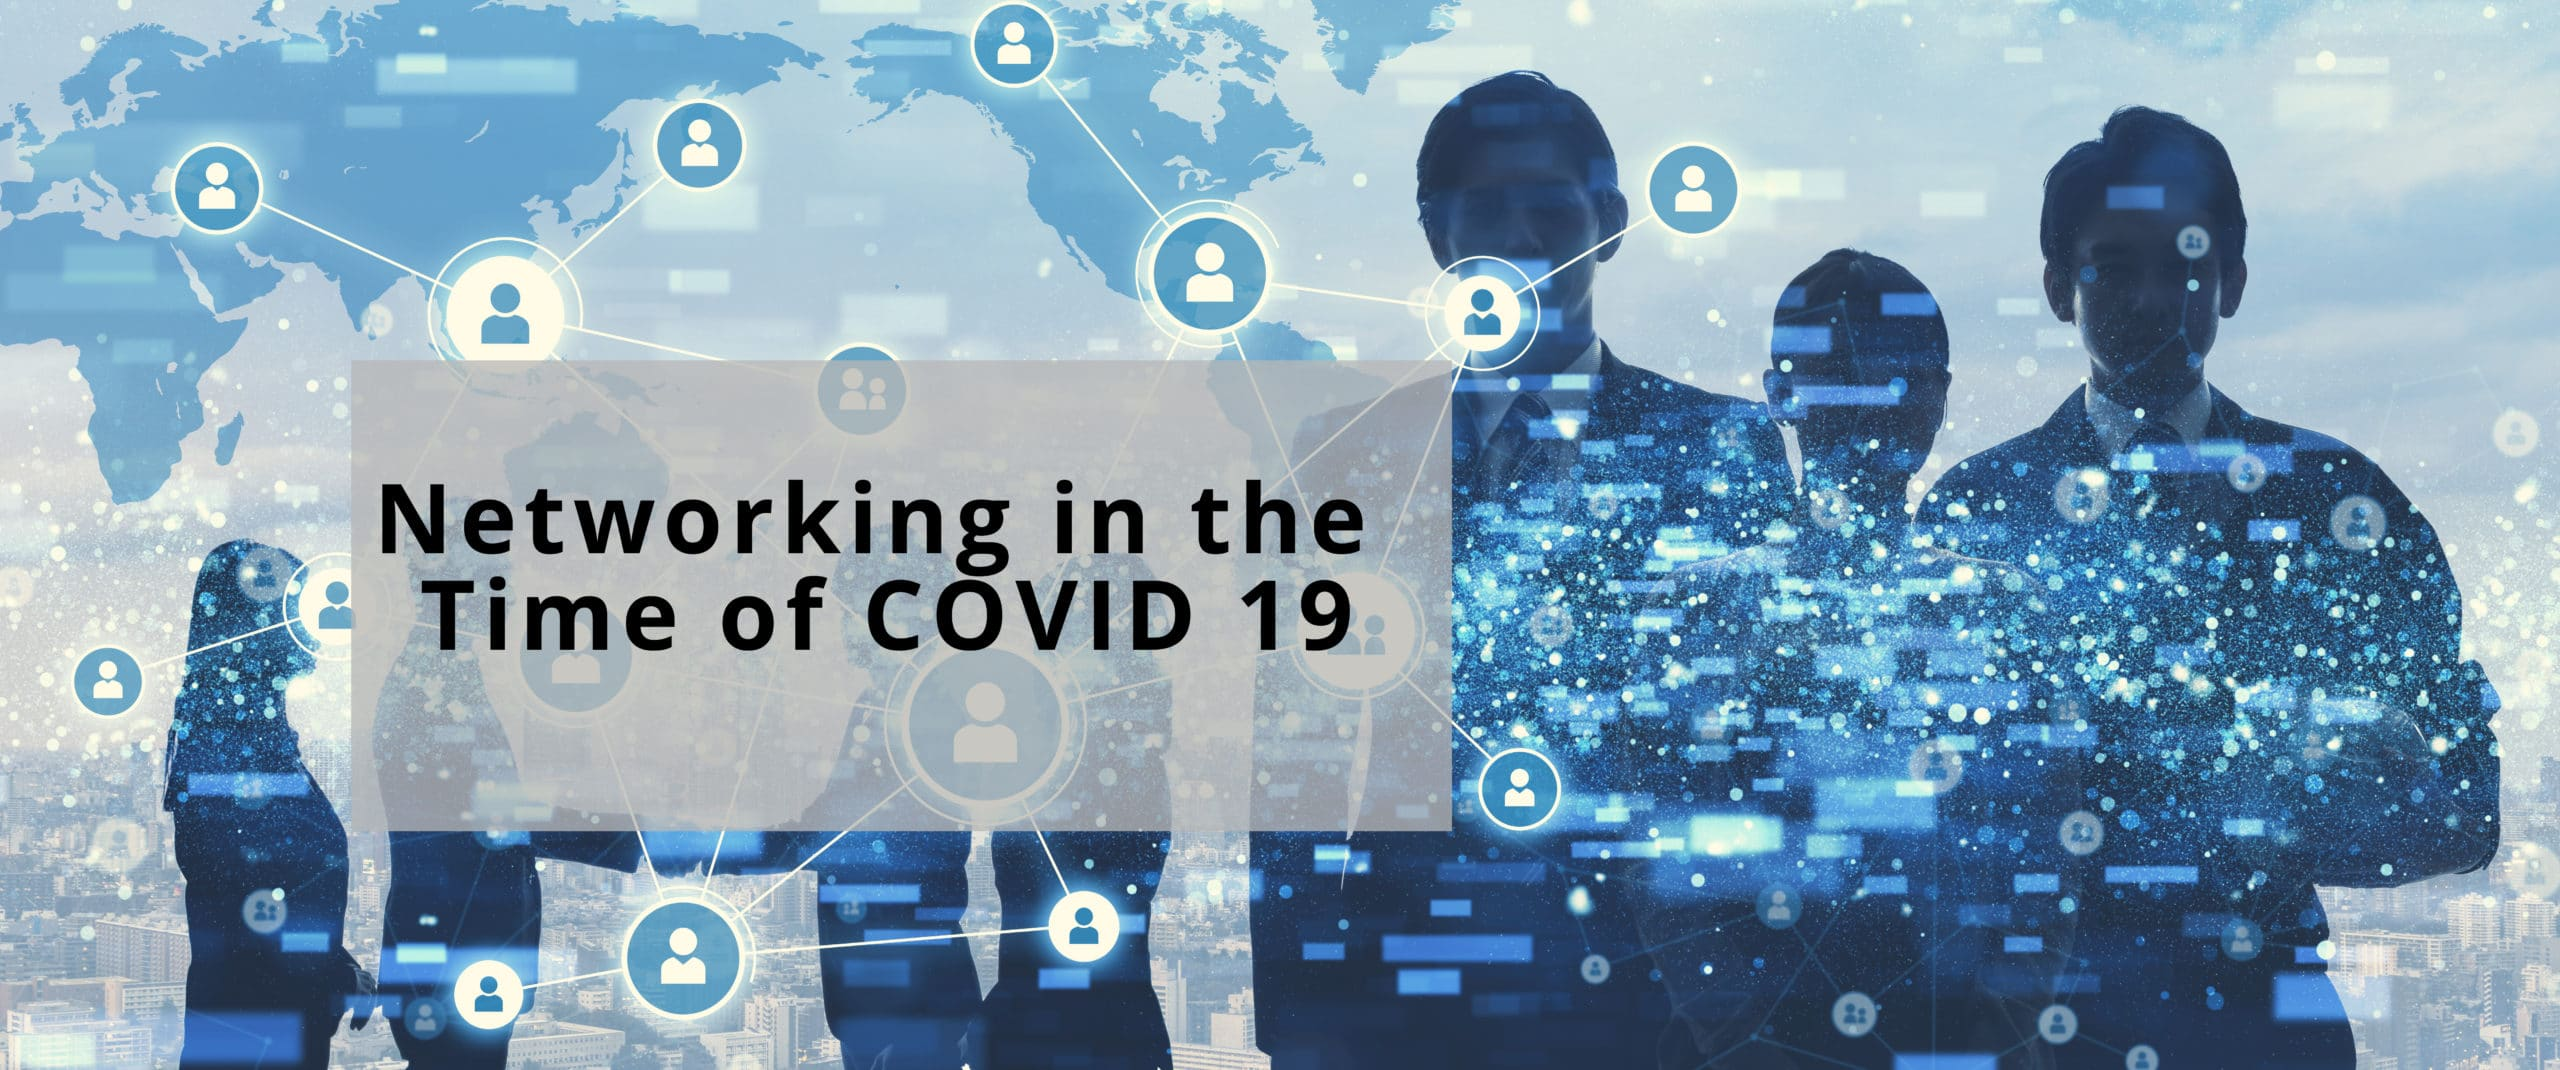 Networking for Start-ups in the Age of Coronavirus